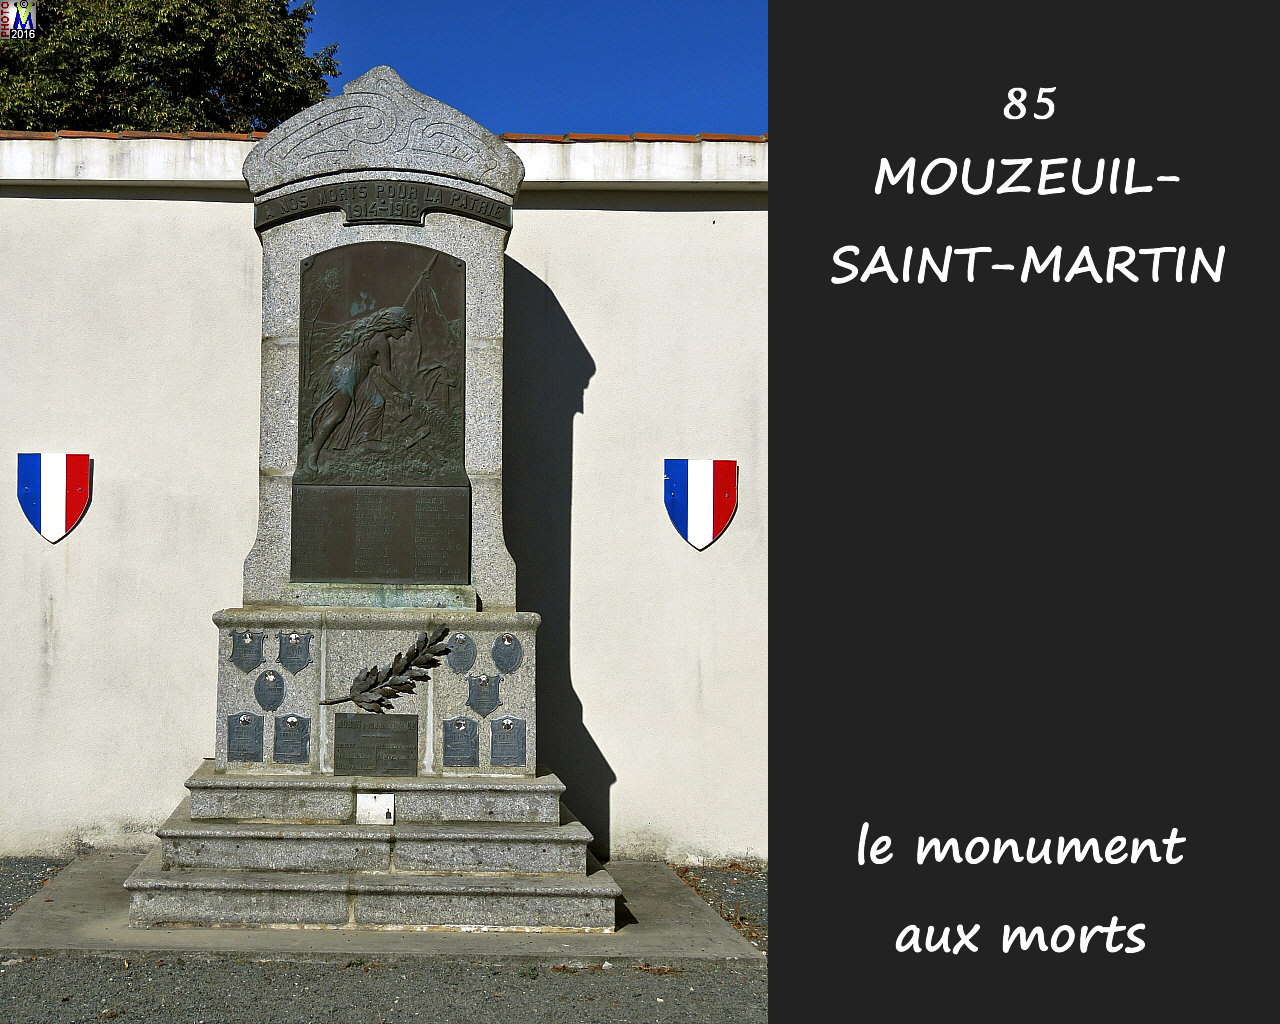 85MOUZEUIL-StMARTIN_morts_1000.jpg